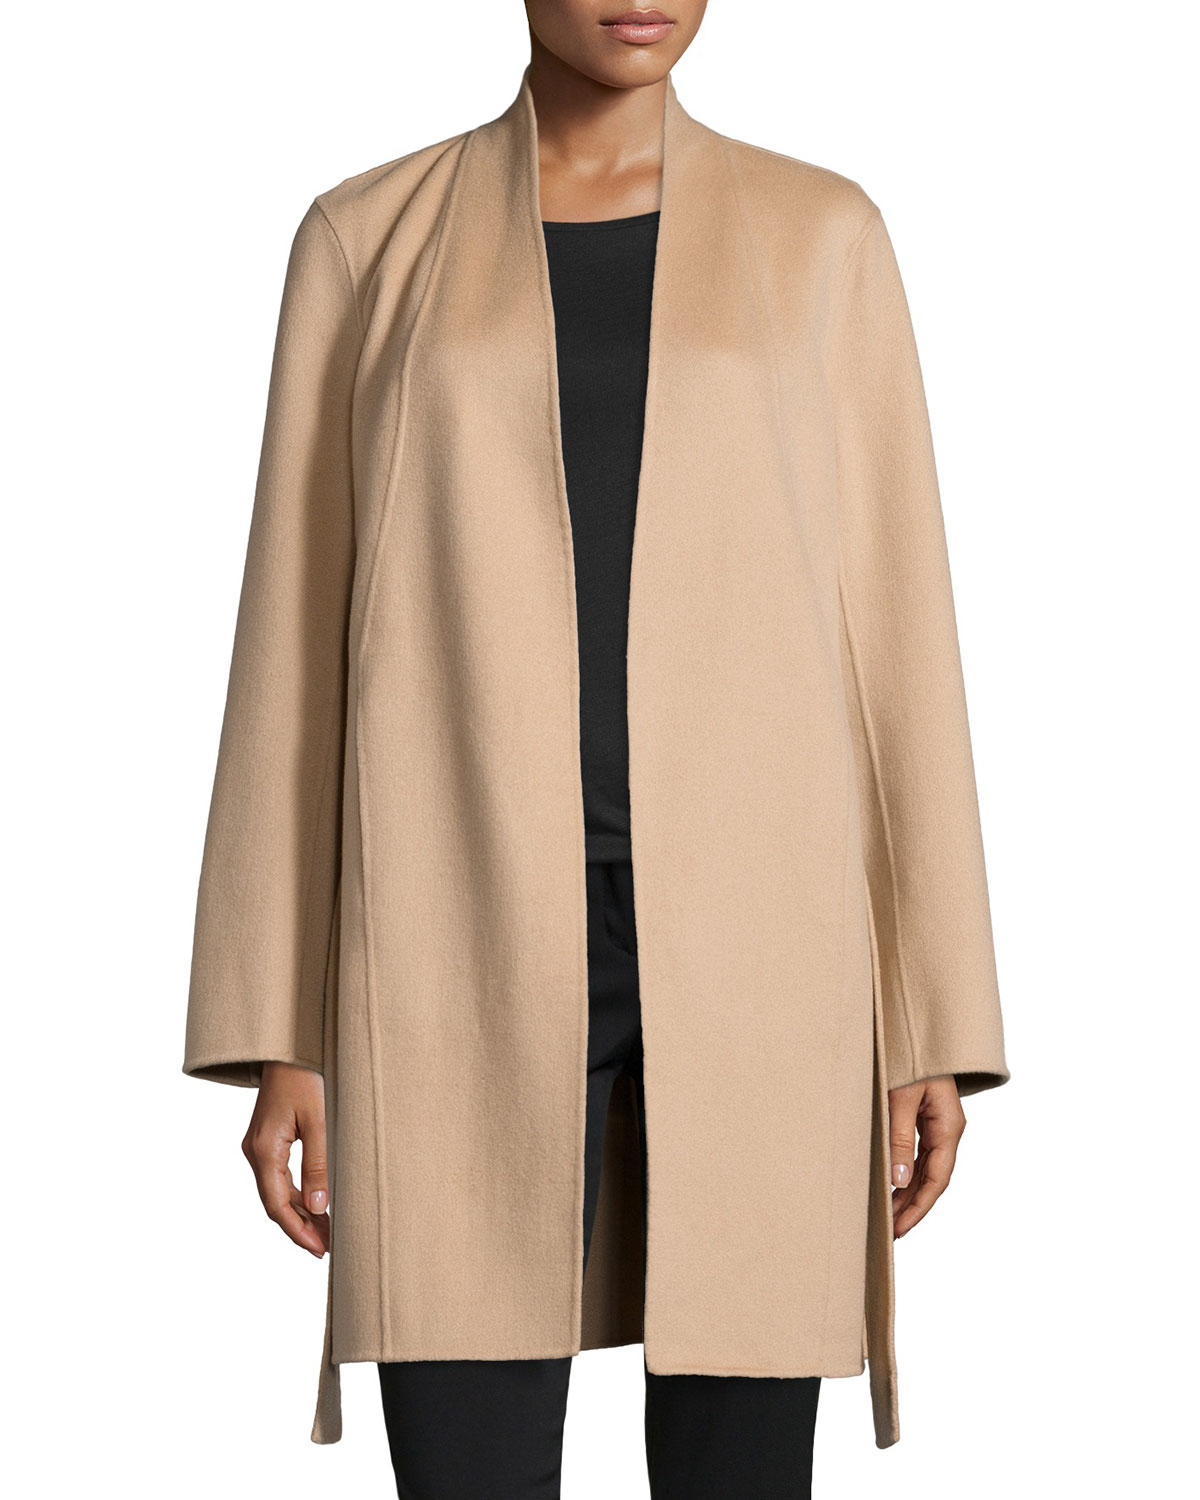 Neiman marcus Double-face Woven Cashmere Coat in Natural | Lyst